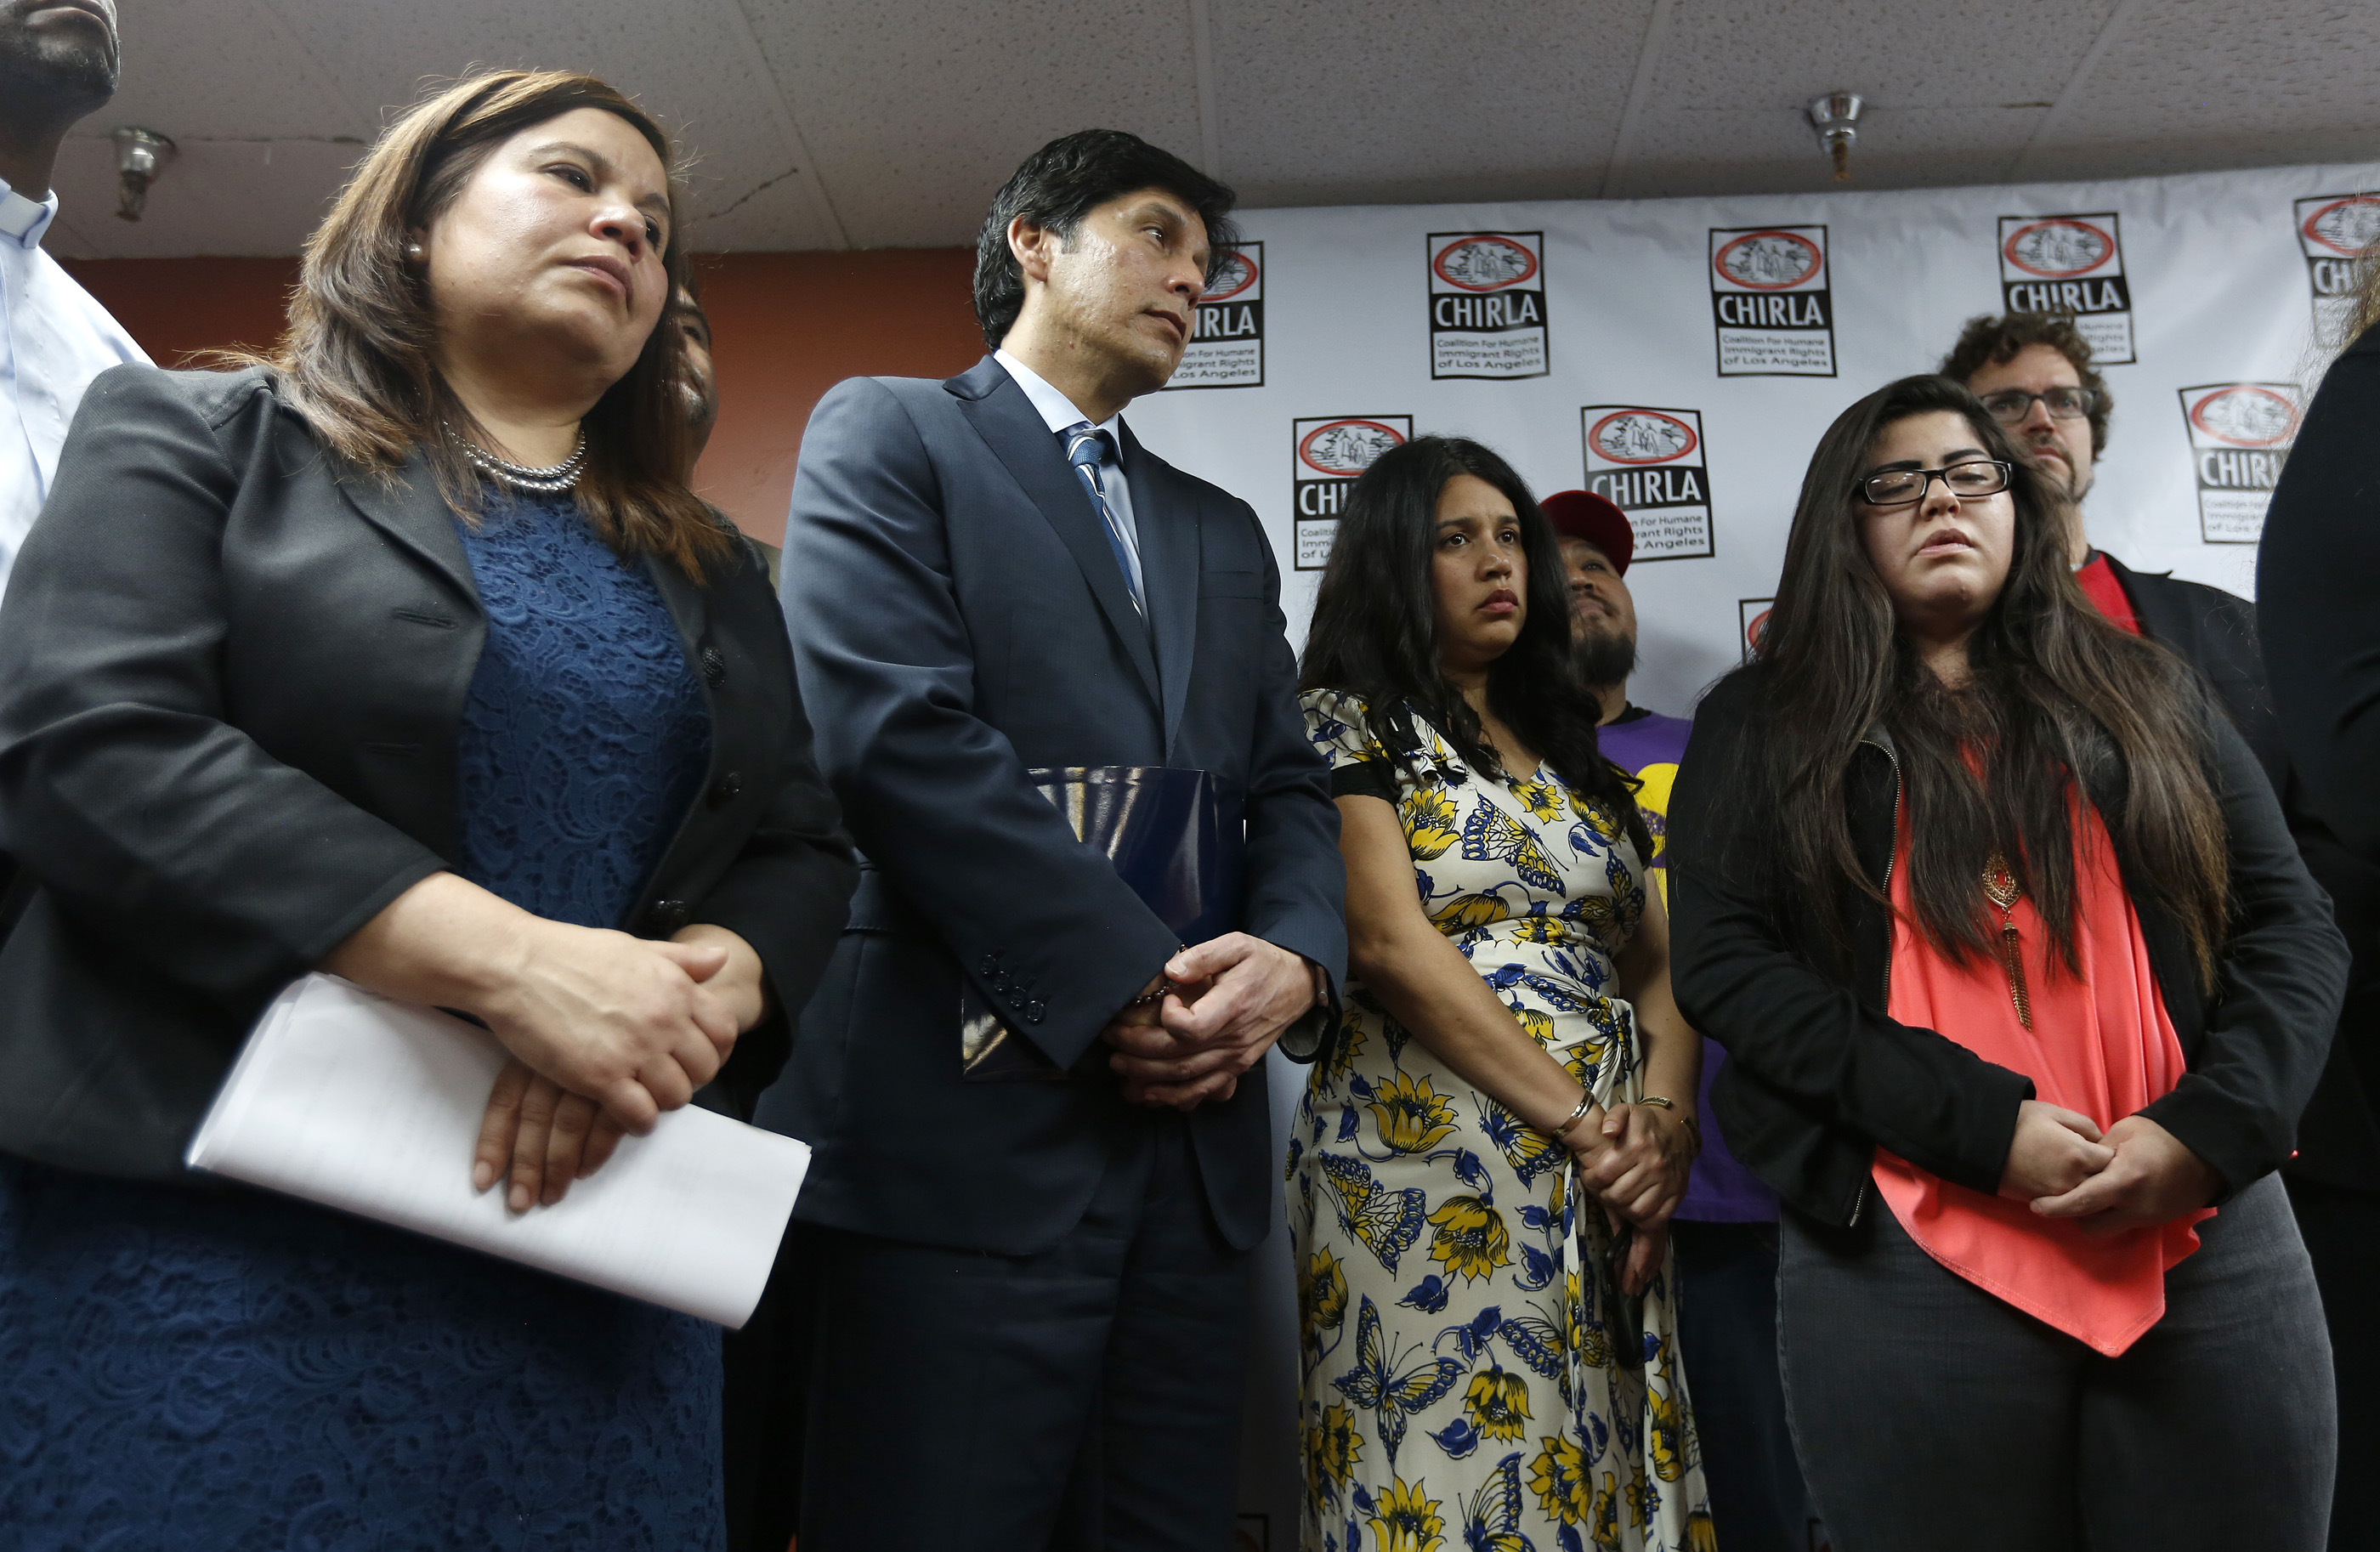 02/10/17/ LOS ANGELES/An emotional Marlene Mosqueda (R), 21, joined immigration advocates during a press conference at CHIRLAs Los Angeles headquarters, to express her outrage of her father, Manuel Mosque Lopez, being detained by ICE at his Van Nuys home. Immigration advocates claim more than 100 people were detained Thursday as U.S. Immigration and Customs Enforcement officials conducted home raids across three Southern California counties. (Photo Aurelia Ventura/ La Opinion)